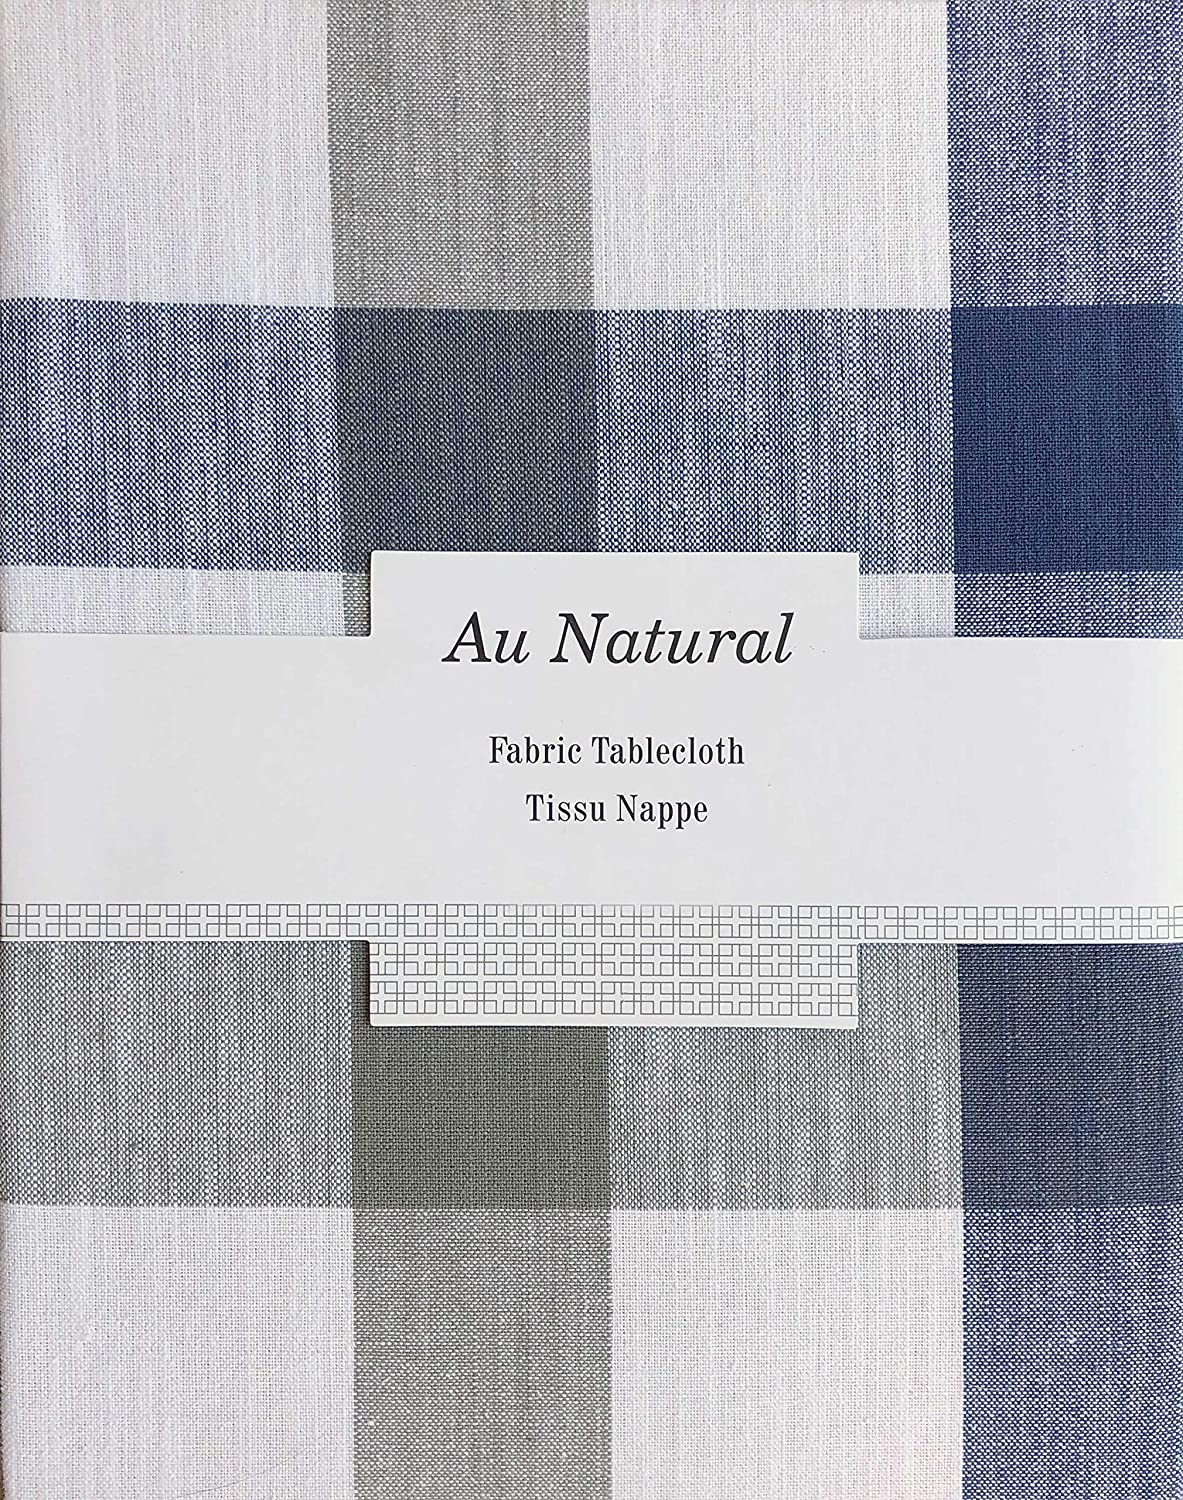 Natural Home Fabric Tablecloth Checked Plaid Pattern with Wide Stripes in Shades of Blue and Gray on White - 60 Inches Round